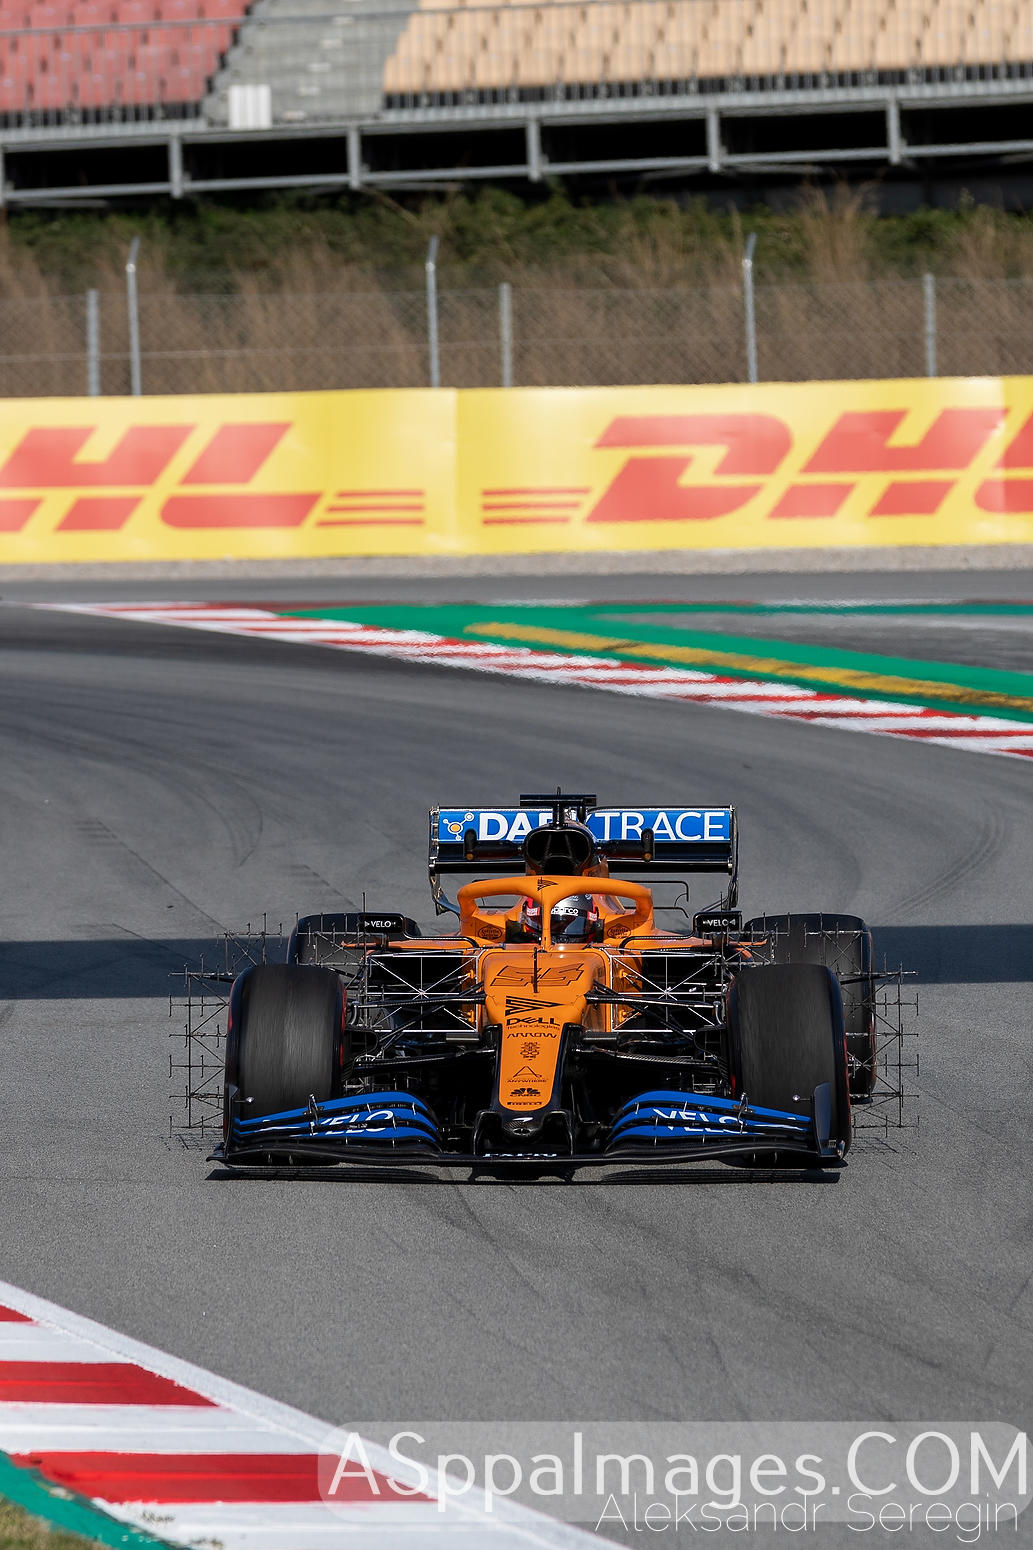 97.2020.FIA_.F1.Test_.Barcelona.Day_.4.MCL_.ASppaImges.COM_ by ASppaImages.COM | Aleksandr B. Seregin (c).